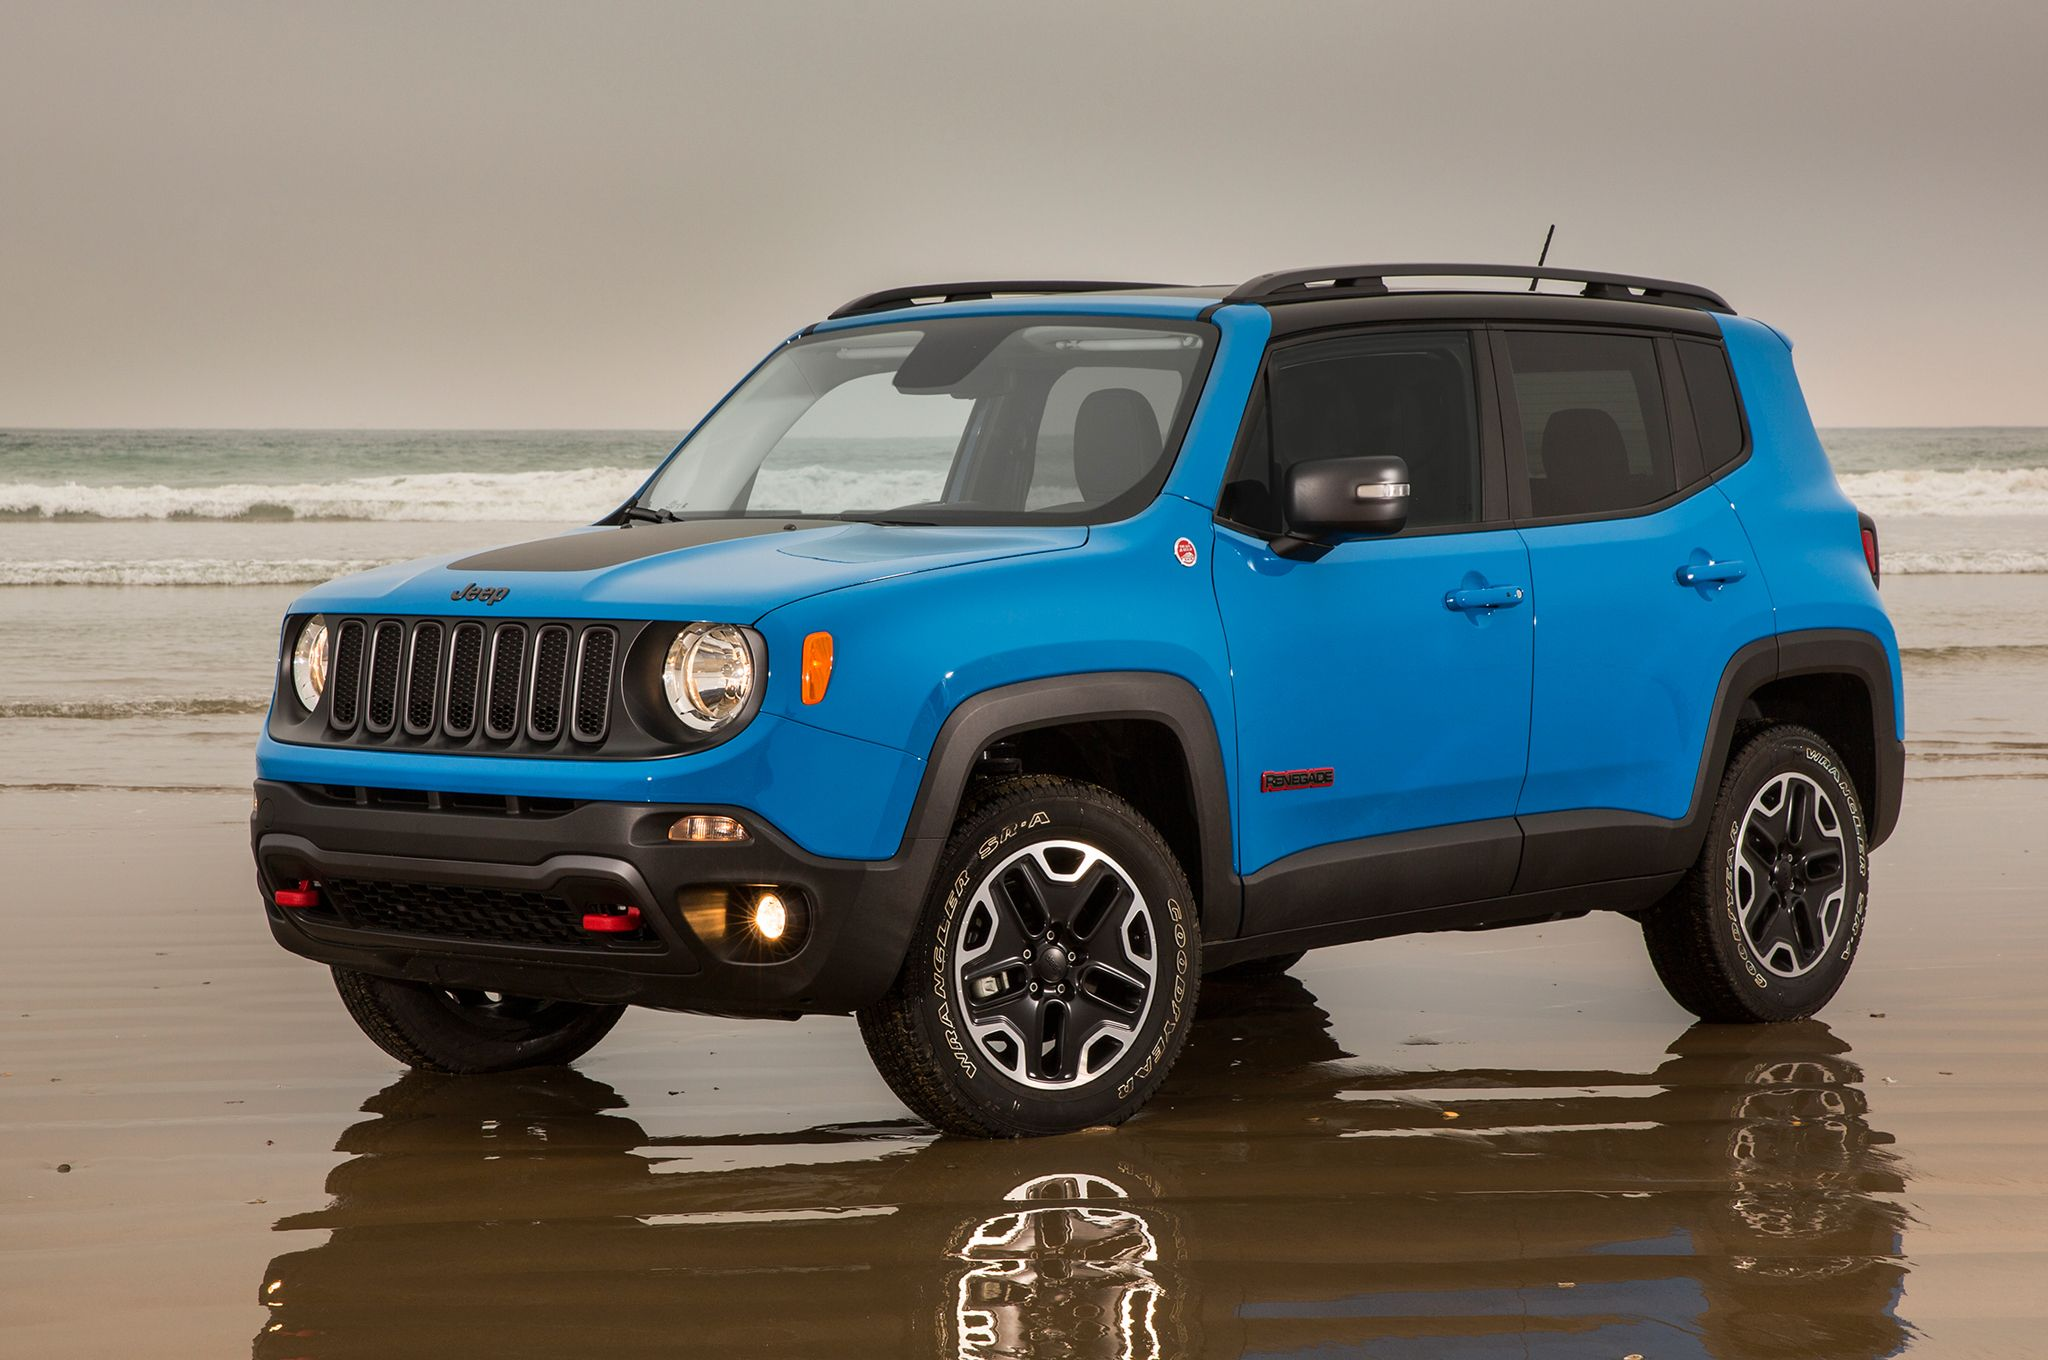 Pin By Blakelee On Wish List Jeep Renegade Jeep Renegade